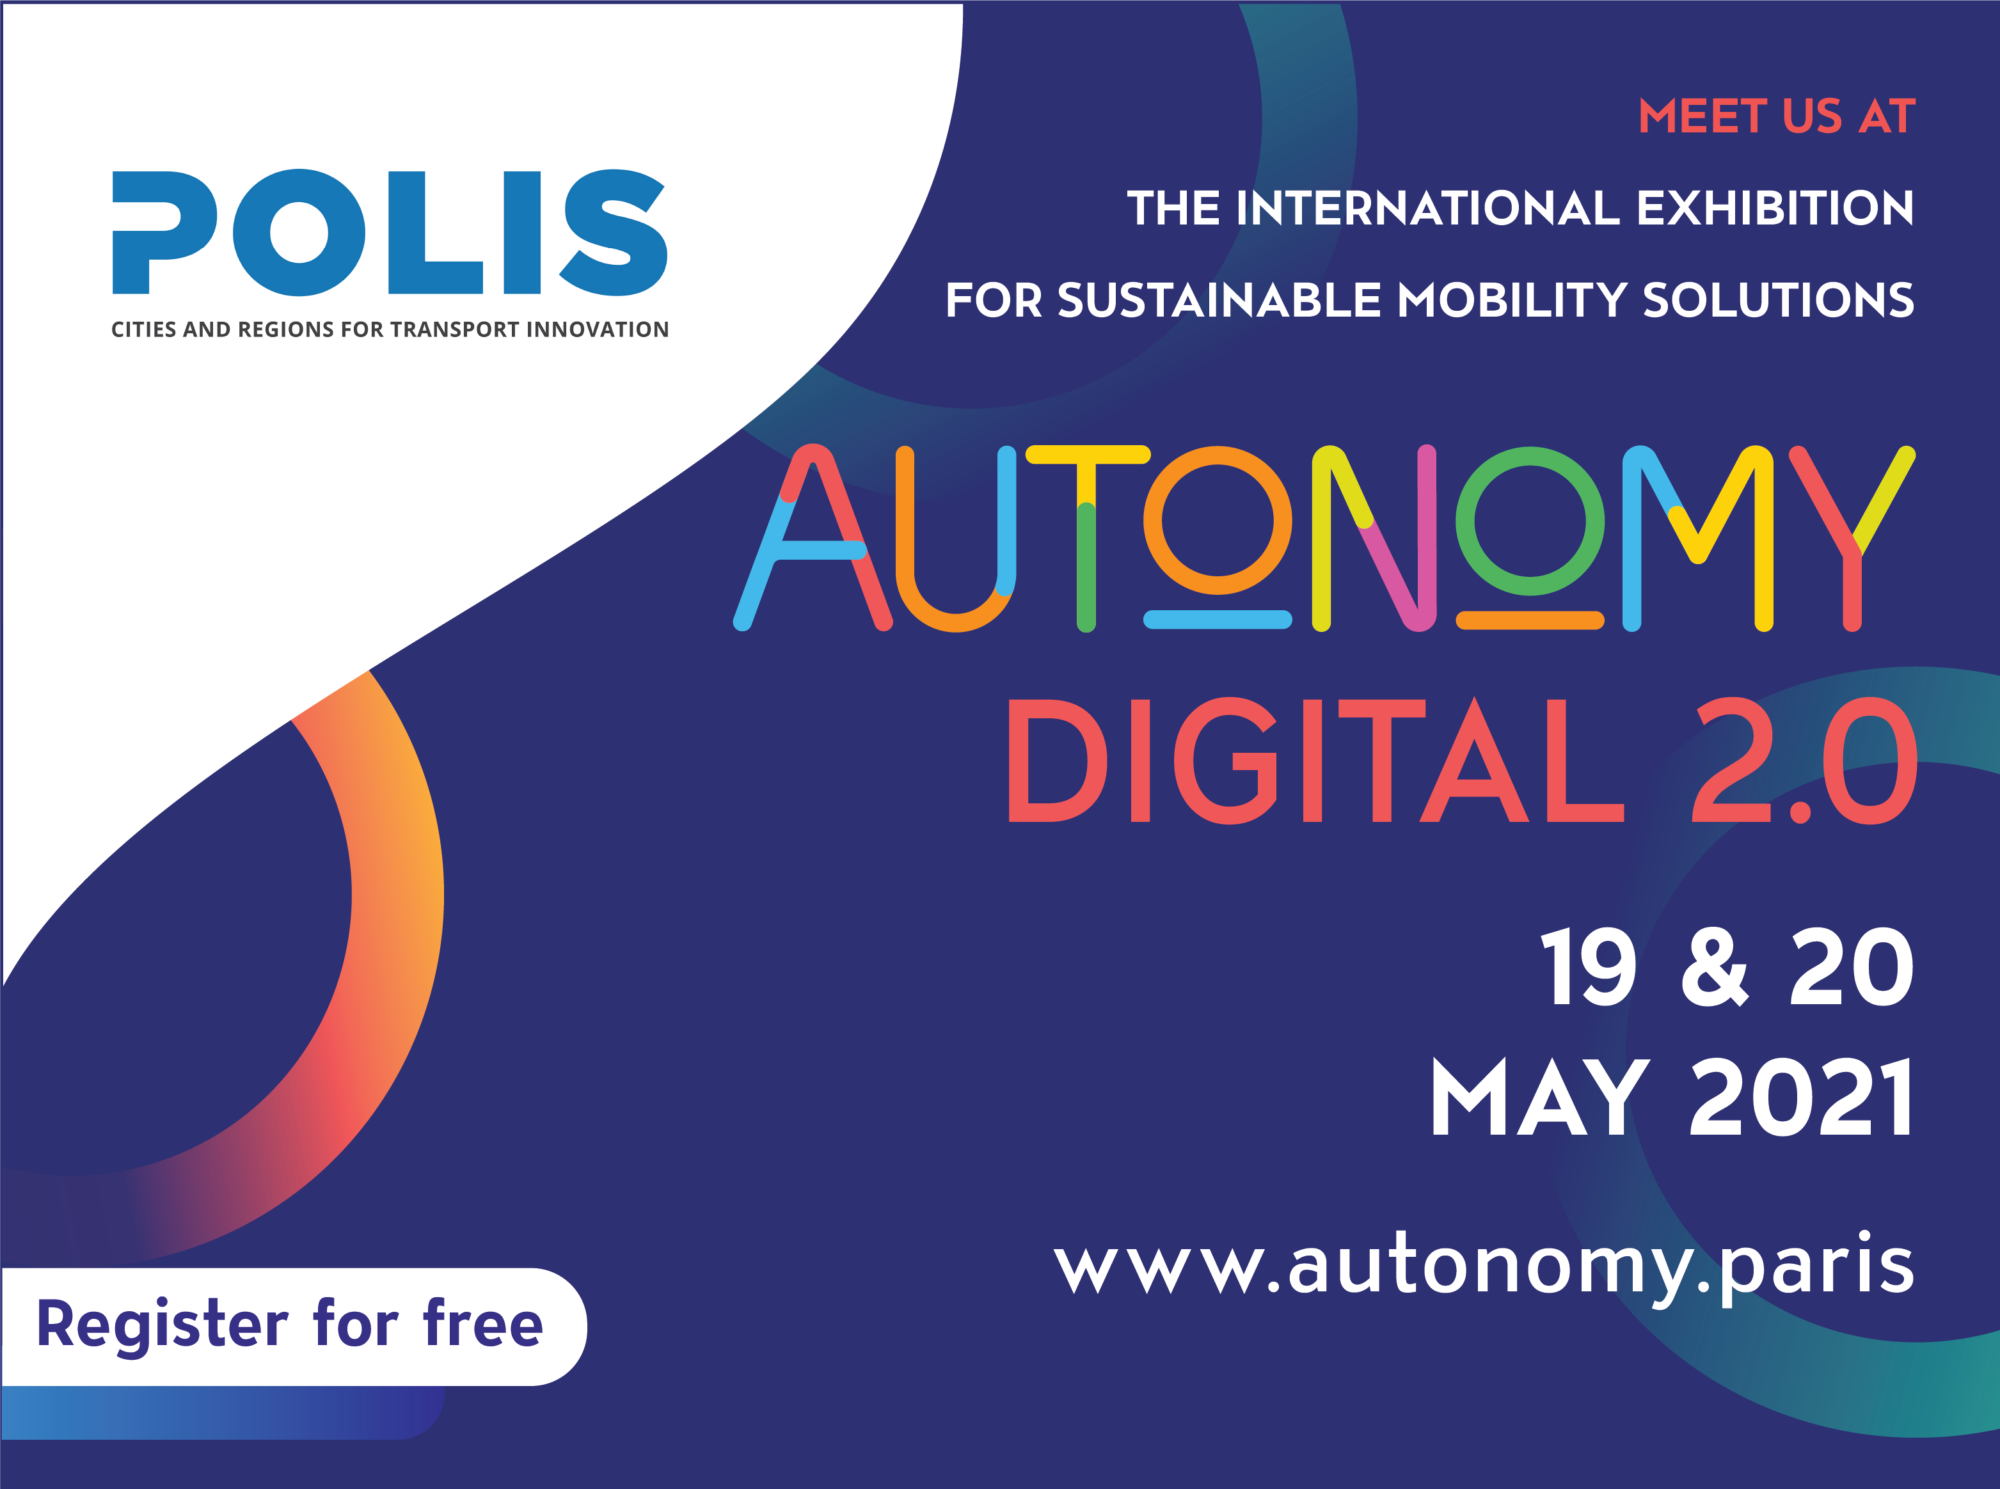 Autonomy Digital 2.0, Moving the Business of Mobility Forward